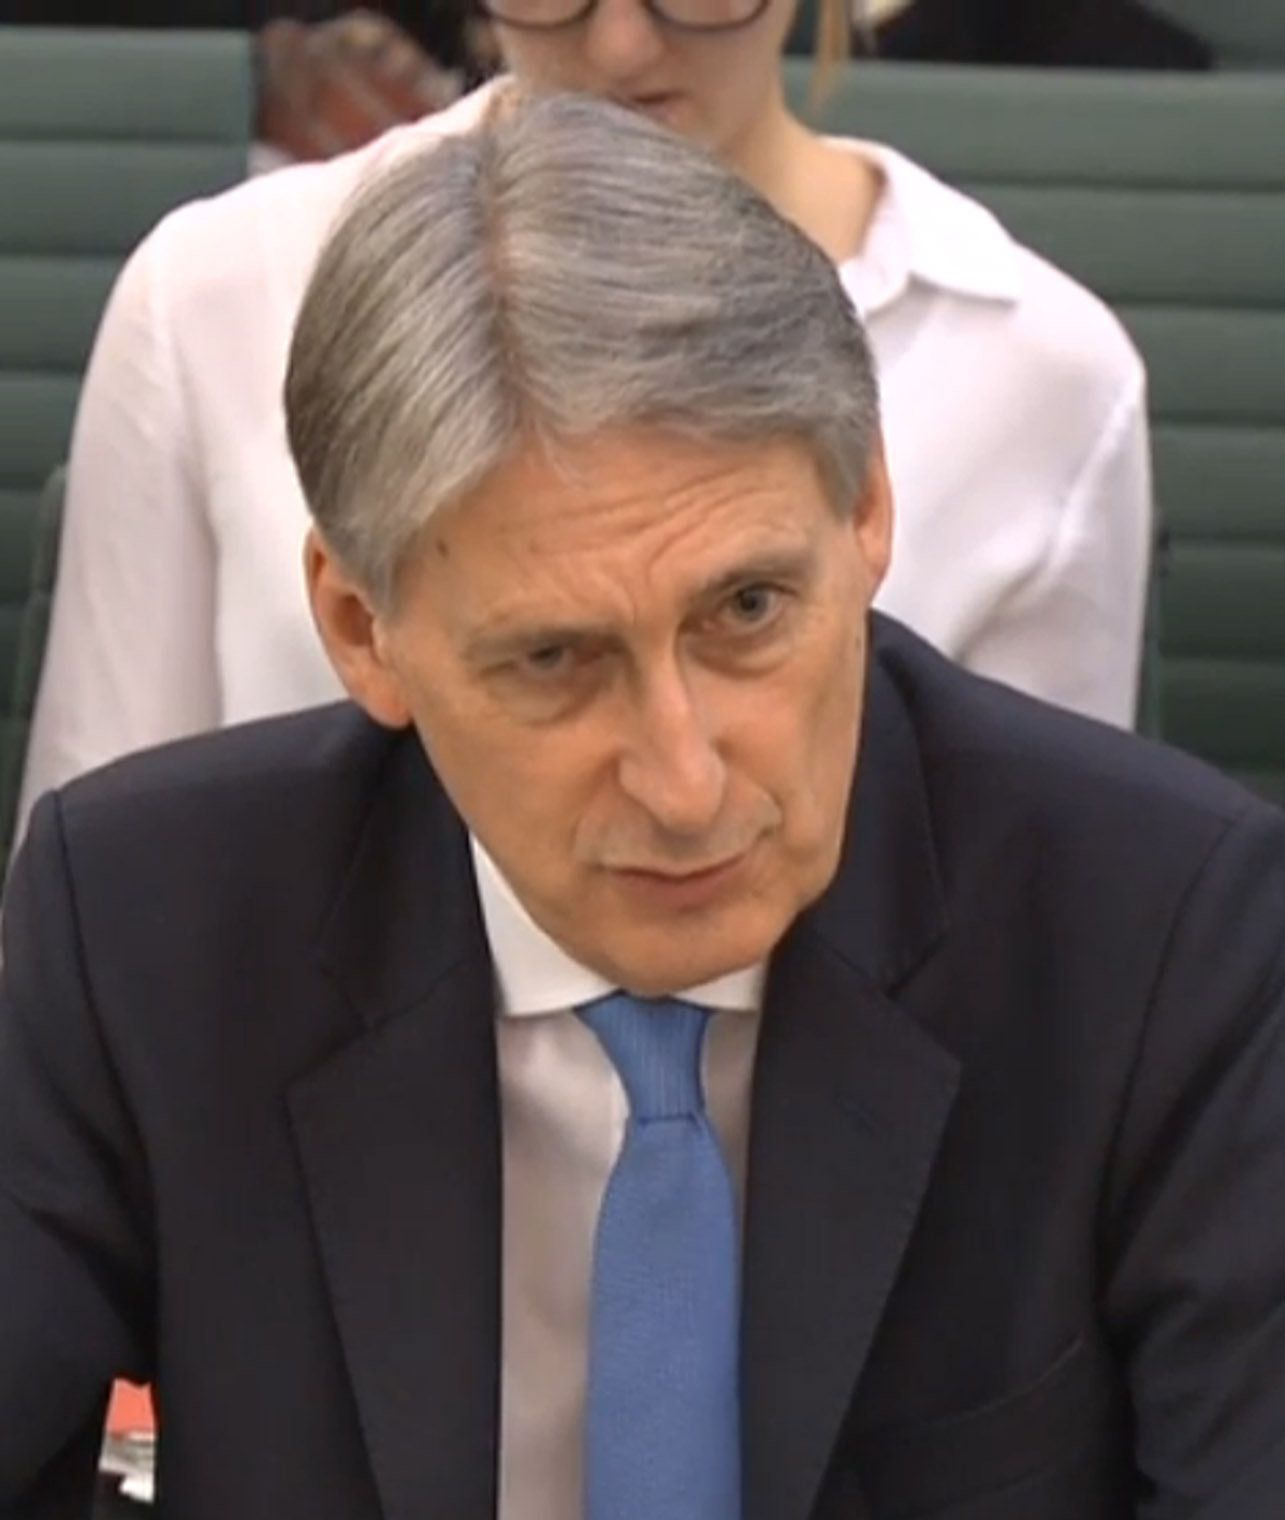 PMQs: Theresa May Denies Philip Hammond Claimed Disabled Workers Were Lowering